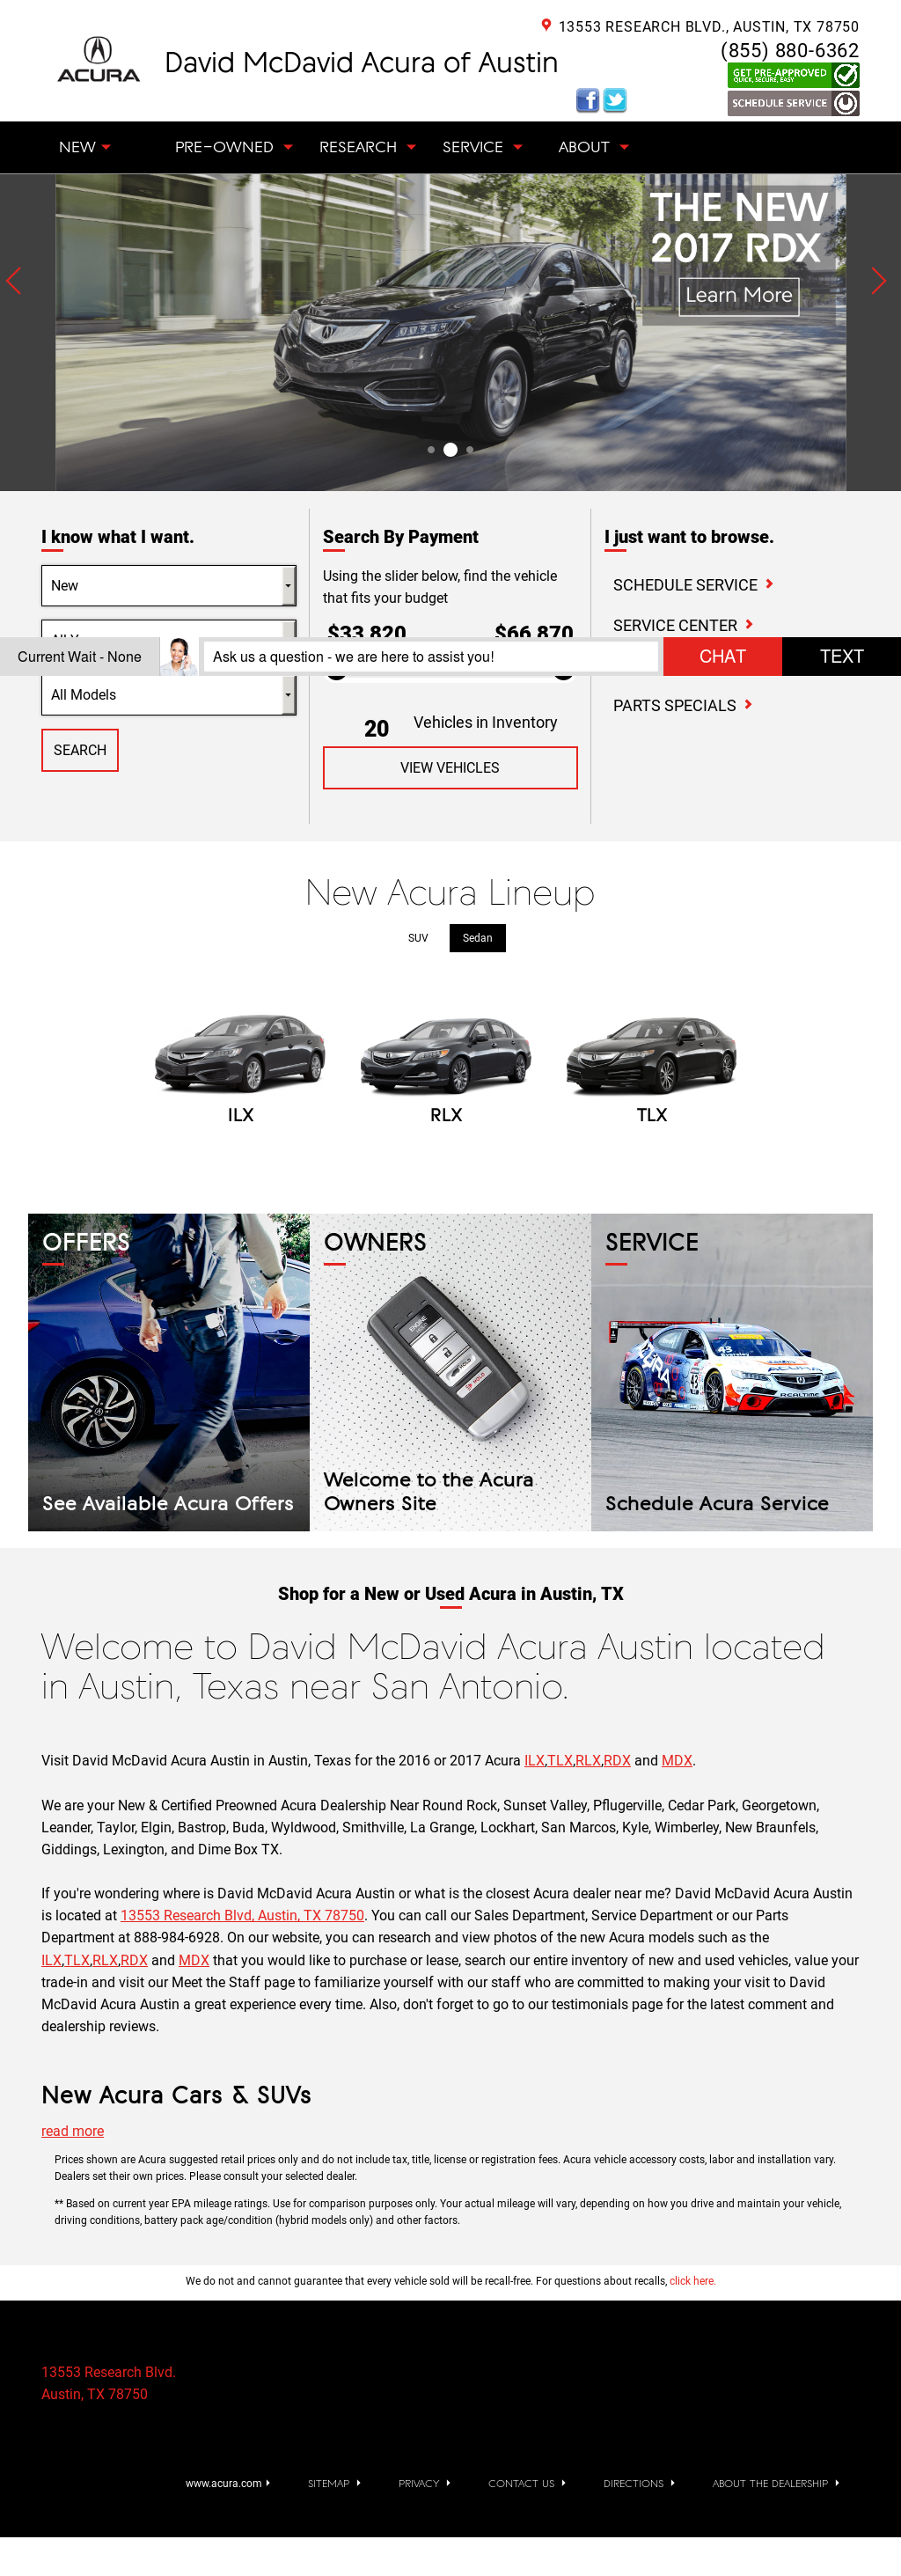 David Mcdavid Acura Austin >> David Mcdavid Acura Of Austin Competitors Revenue And Employees